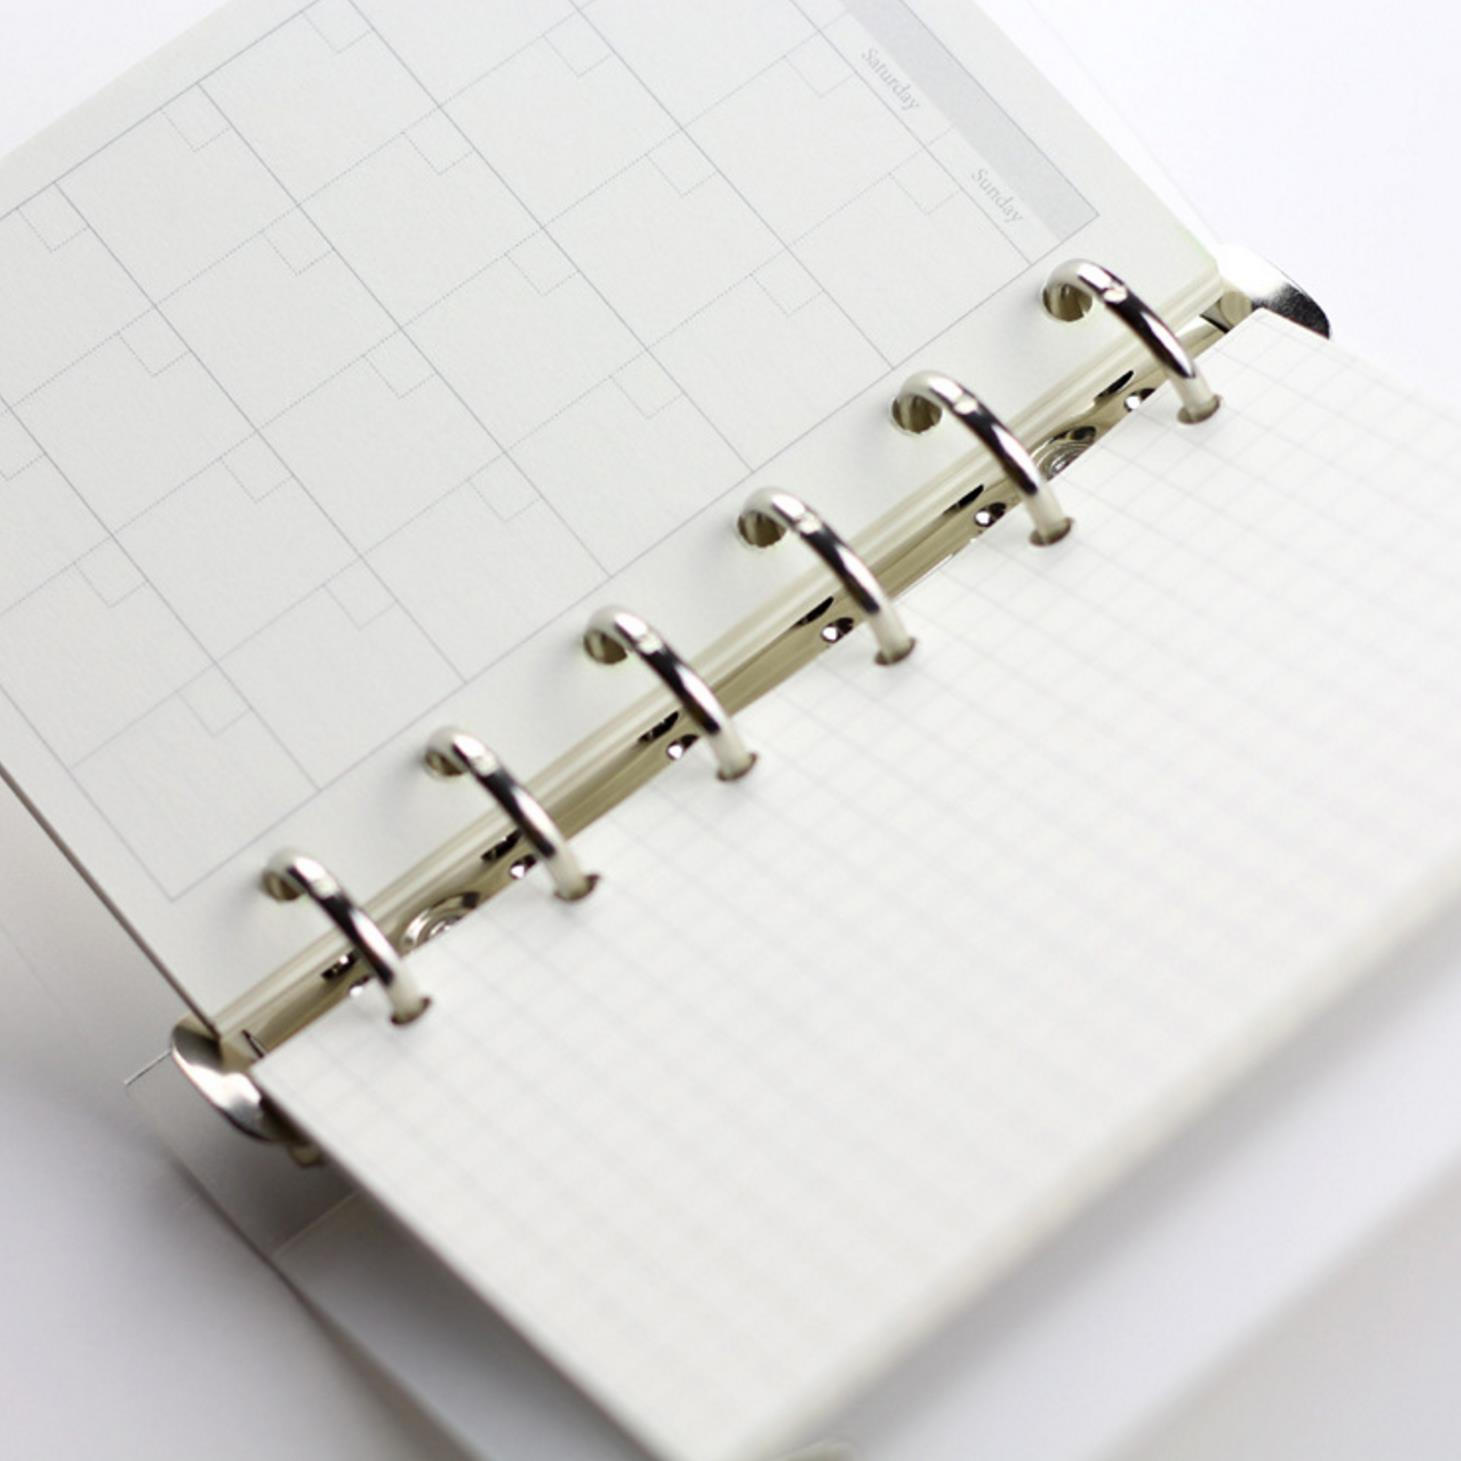 A5 A6 A7 Loose Leaf Notebook Refill Spiral Binder Planner Inner Page Inside Paper Dairy Weekly Monthly Plan To do Line Dot grid 6